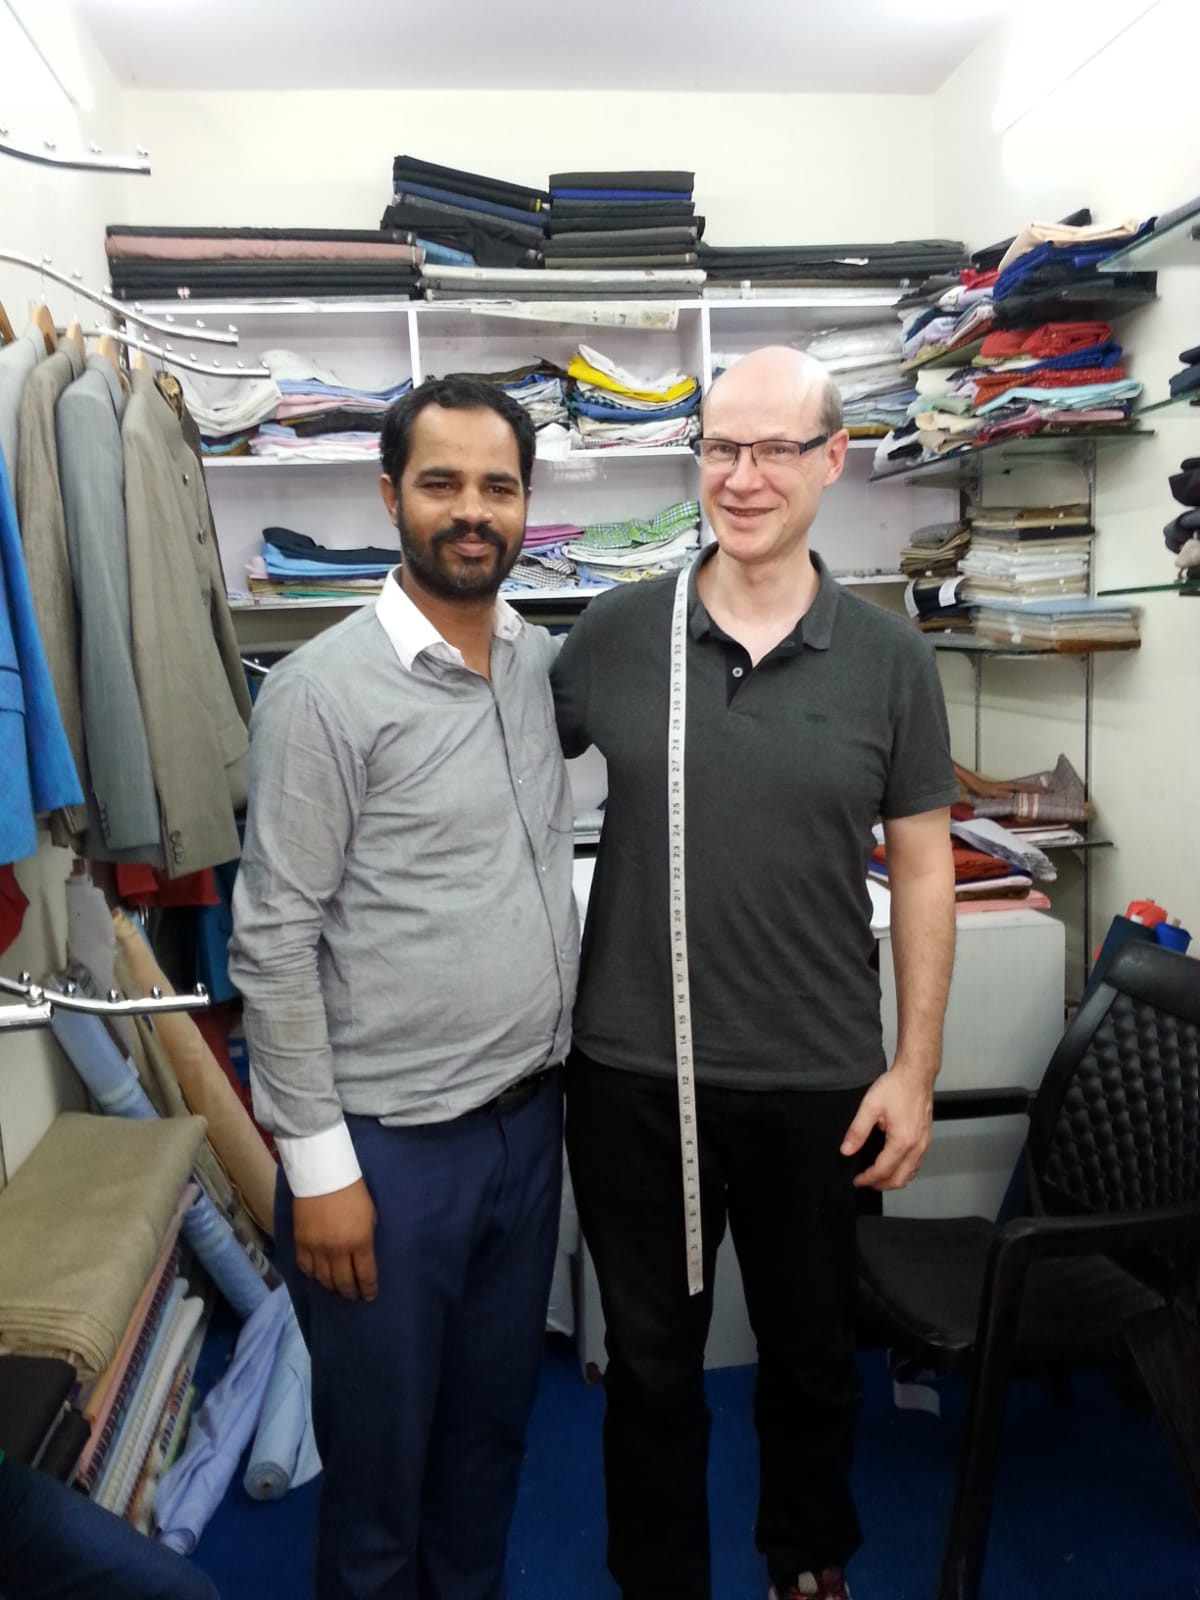 ten things to do to visit India Otherwise - Jaipur - Go to a tailor